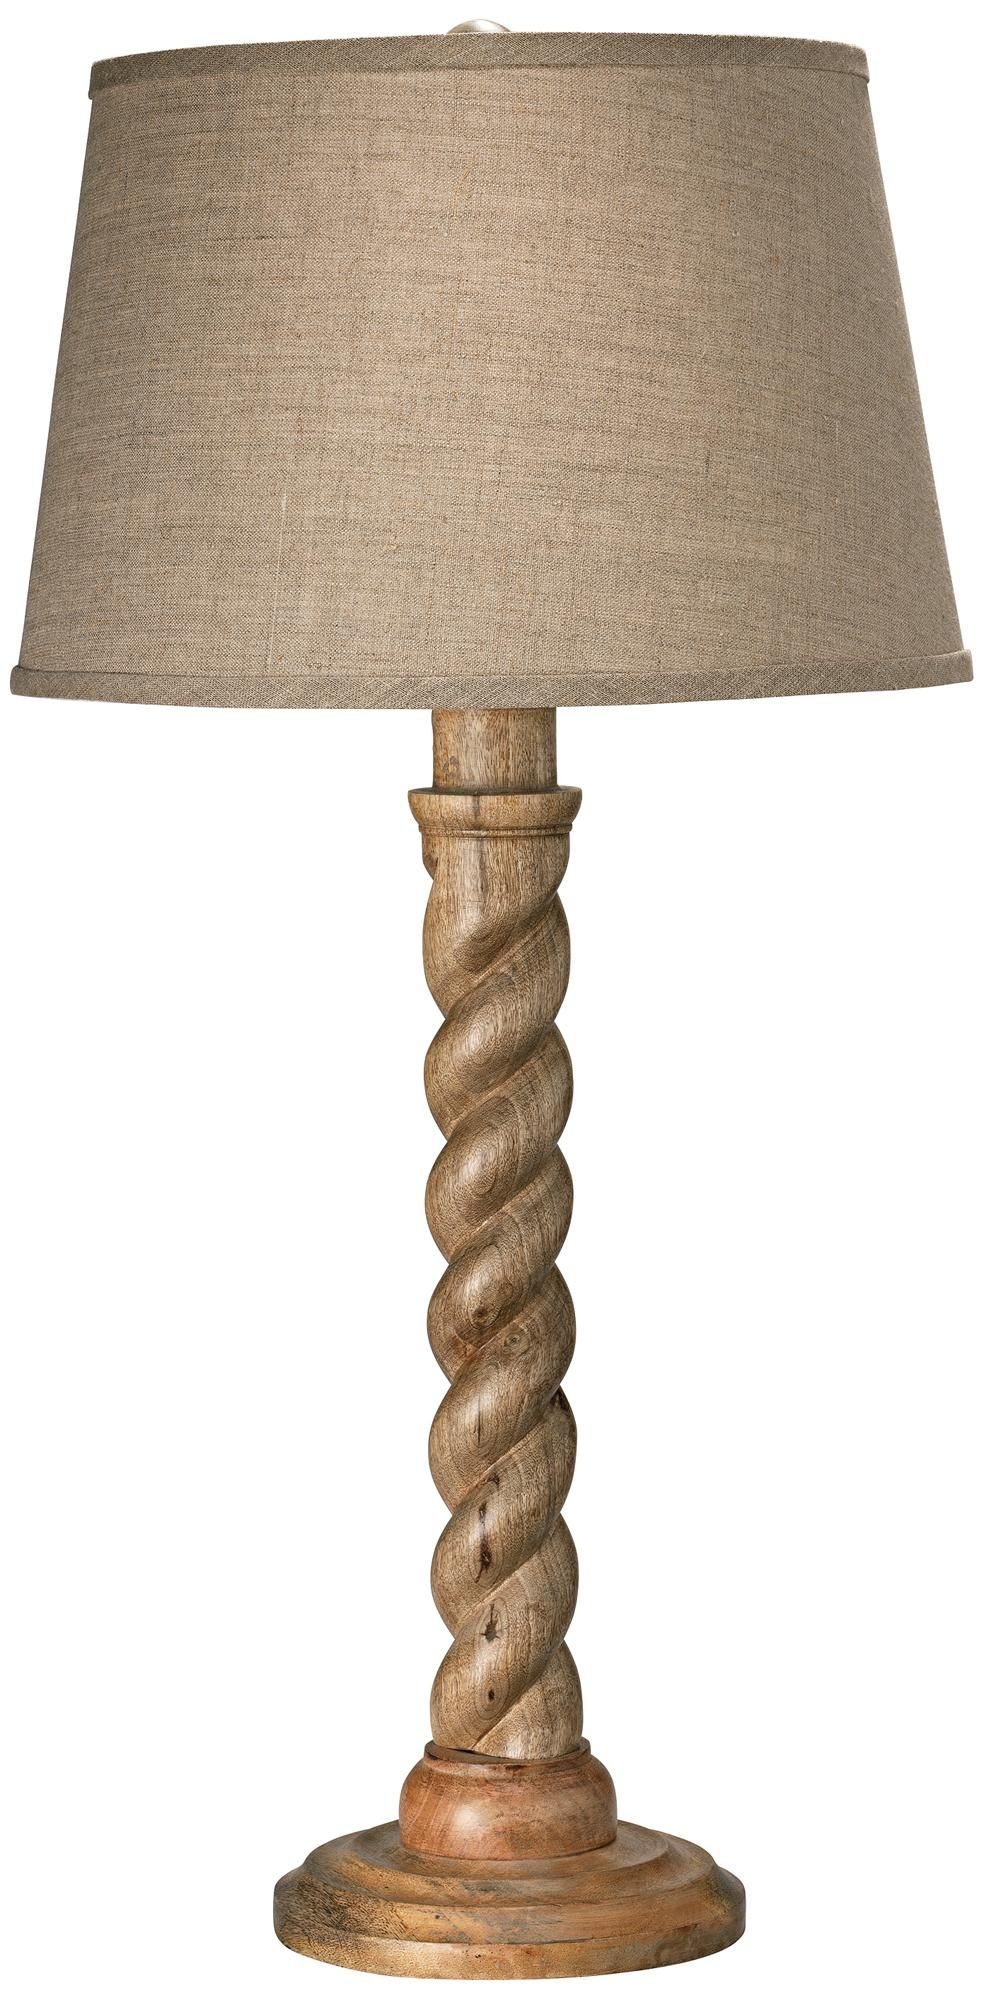 Jamie young barley twist natural wood table lamp living room jamie young barley twist natural wood table lamp geotapseo Gallery